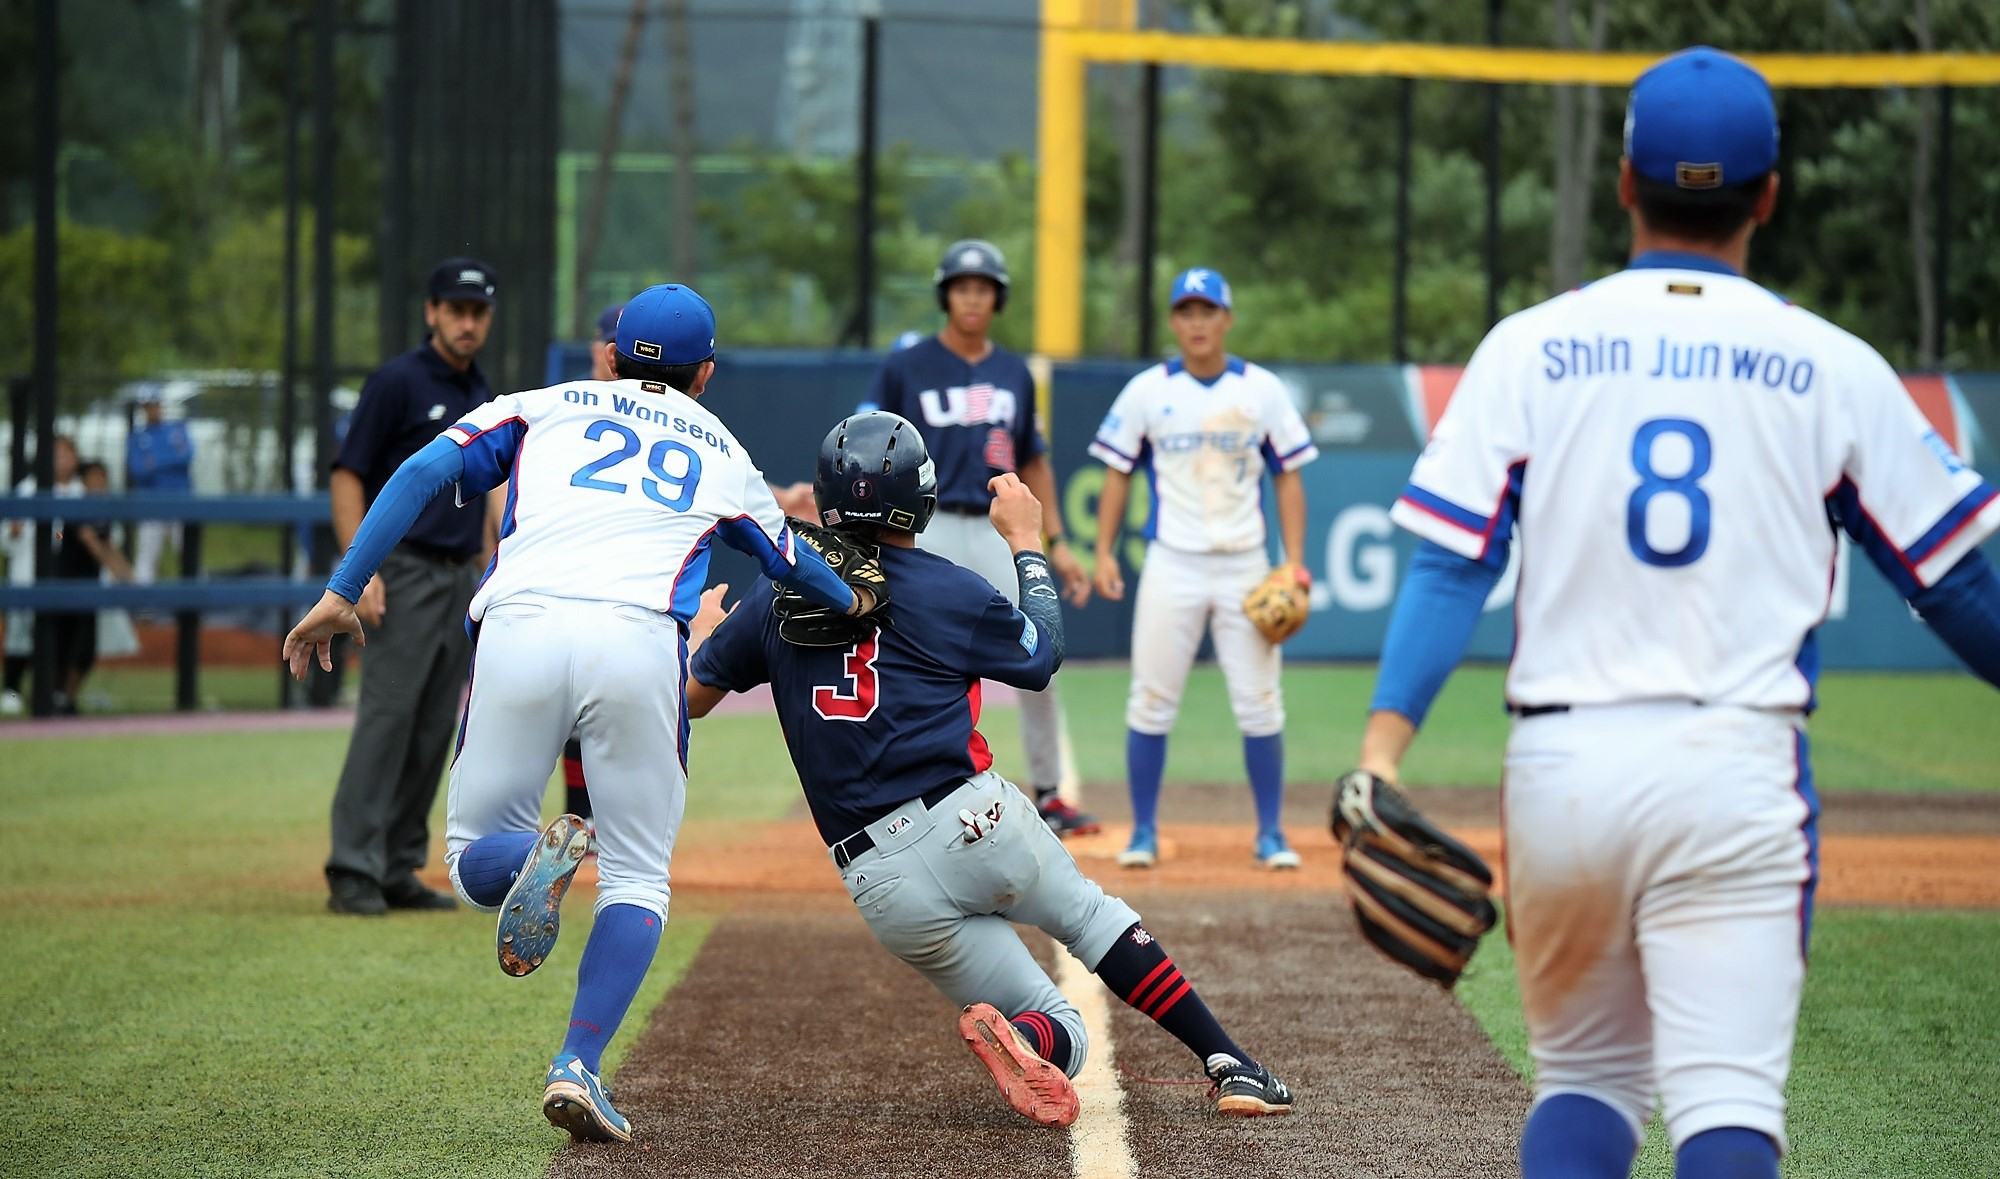 Despite losing Tolentino at home, the USA took the lead